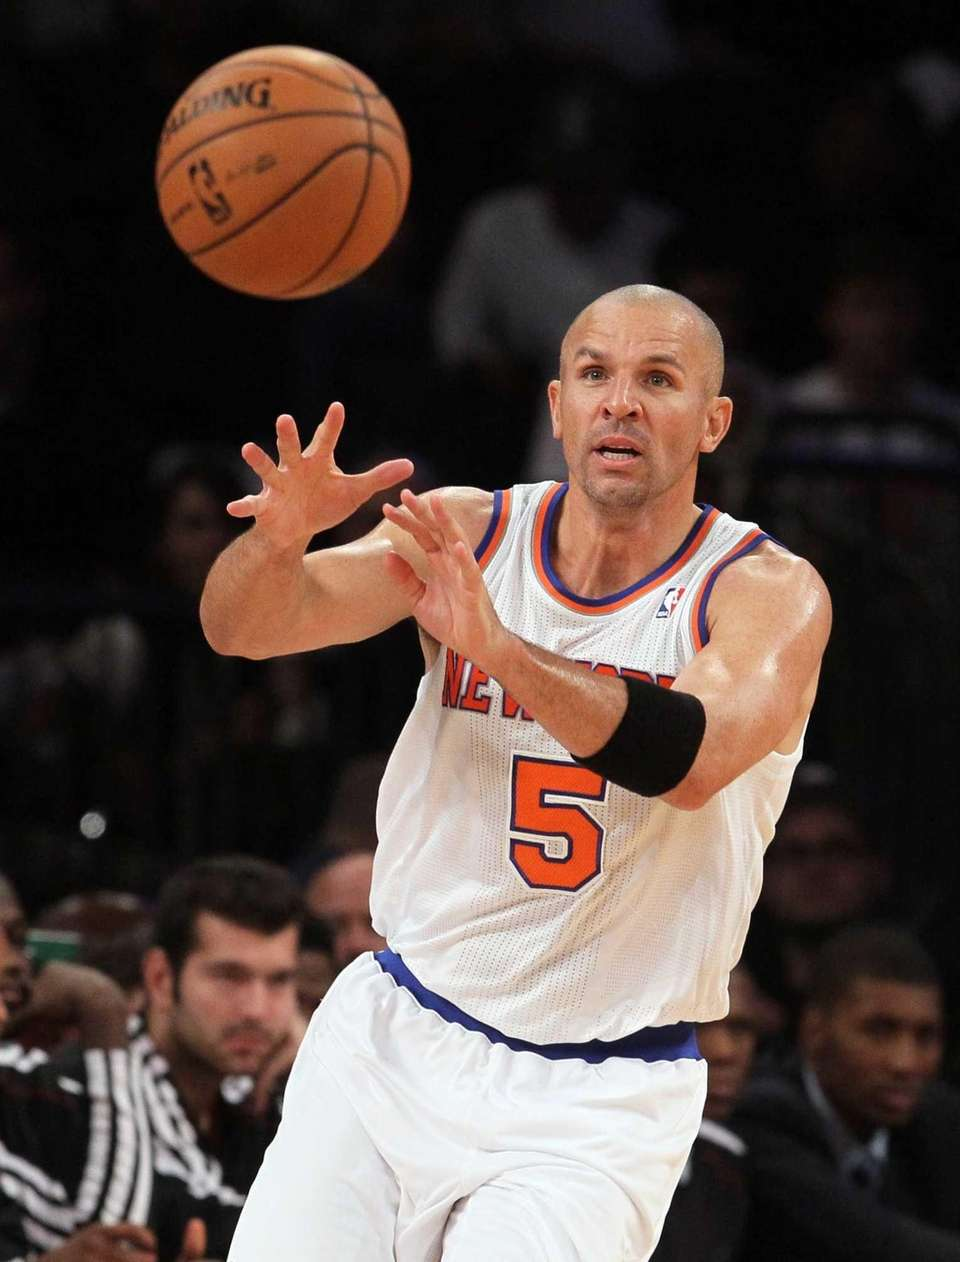 Jason Kidd passes the ball during a game